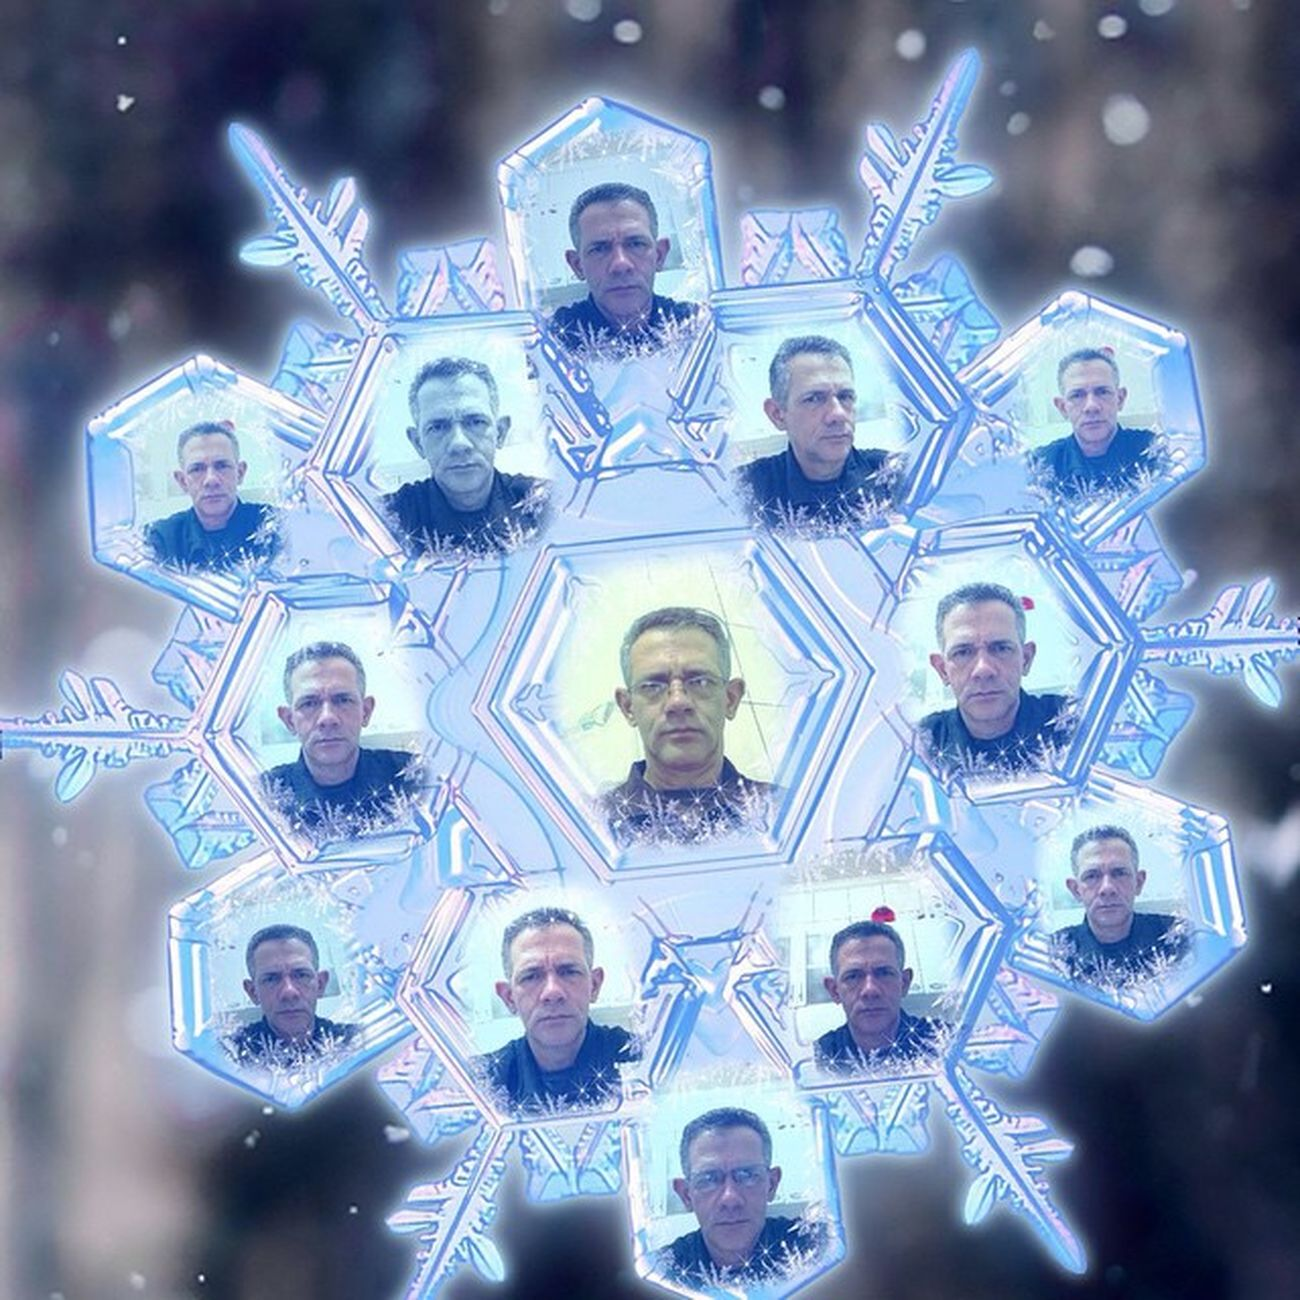 Meus efeitos fotográficos com o aplicativo Pho.to Lab Photolab Magicsnowflake Collage Collageart Photocollage Christmas MerryChristmas NewYear Christmastime Xmas ChristmasEVe MerryChristmasEve  Christmas2015 NewYear2015 Newyearseve NewYearsDay